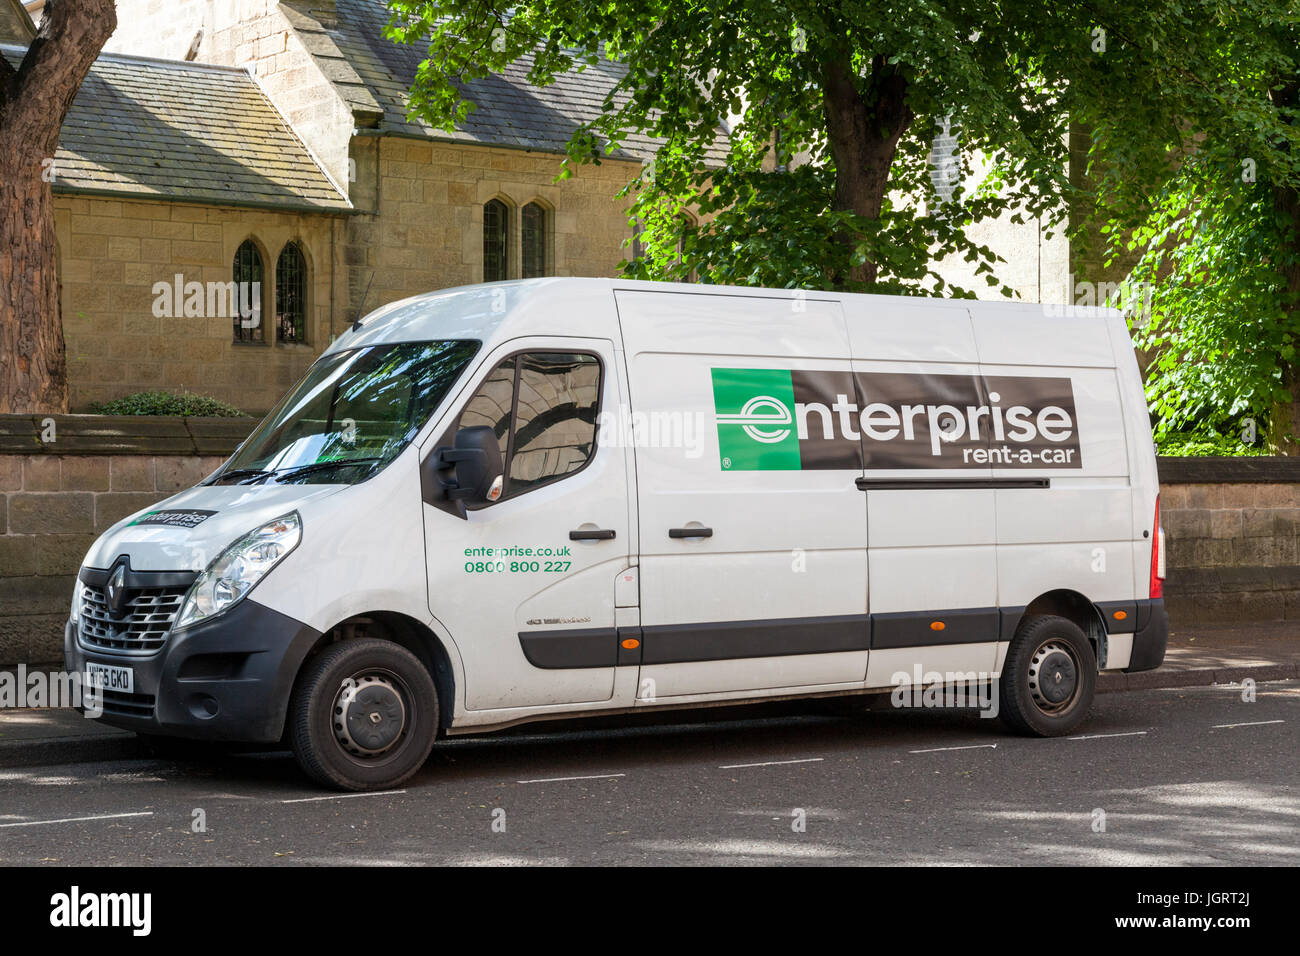 Enterprise Van Rental >> Van Hire By Enterprise Rent A Car Stock Photo 148041226 Alamy